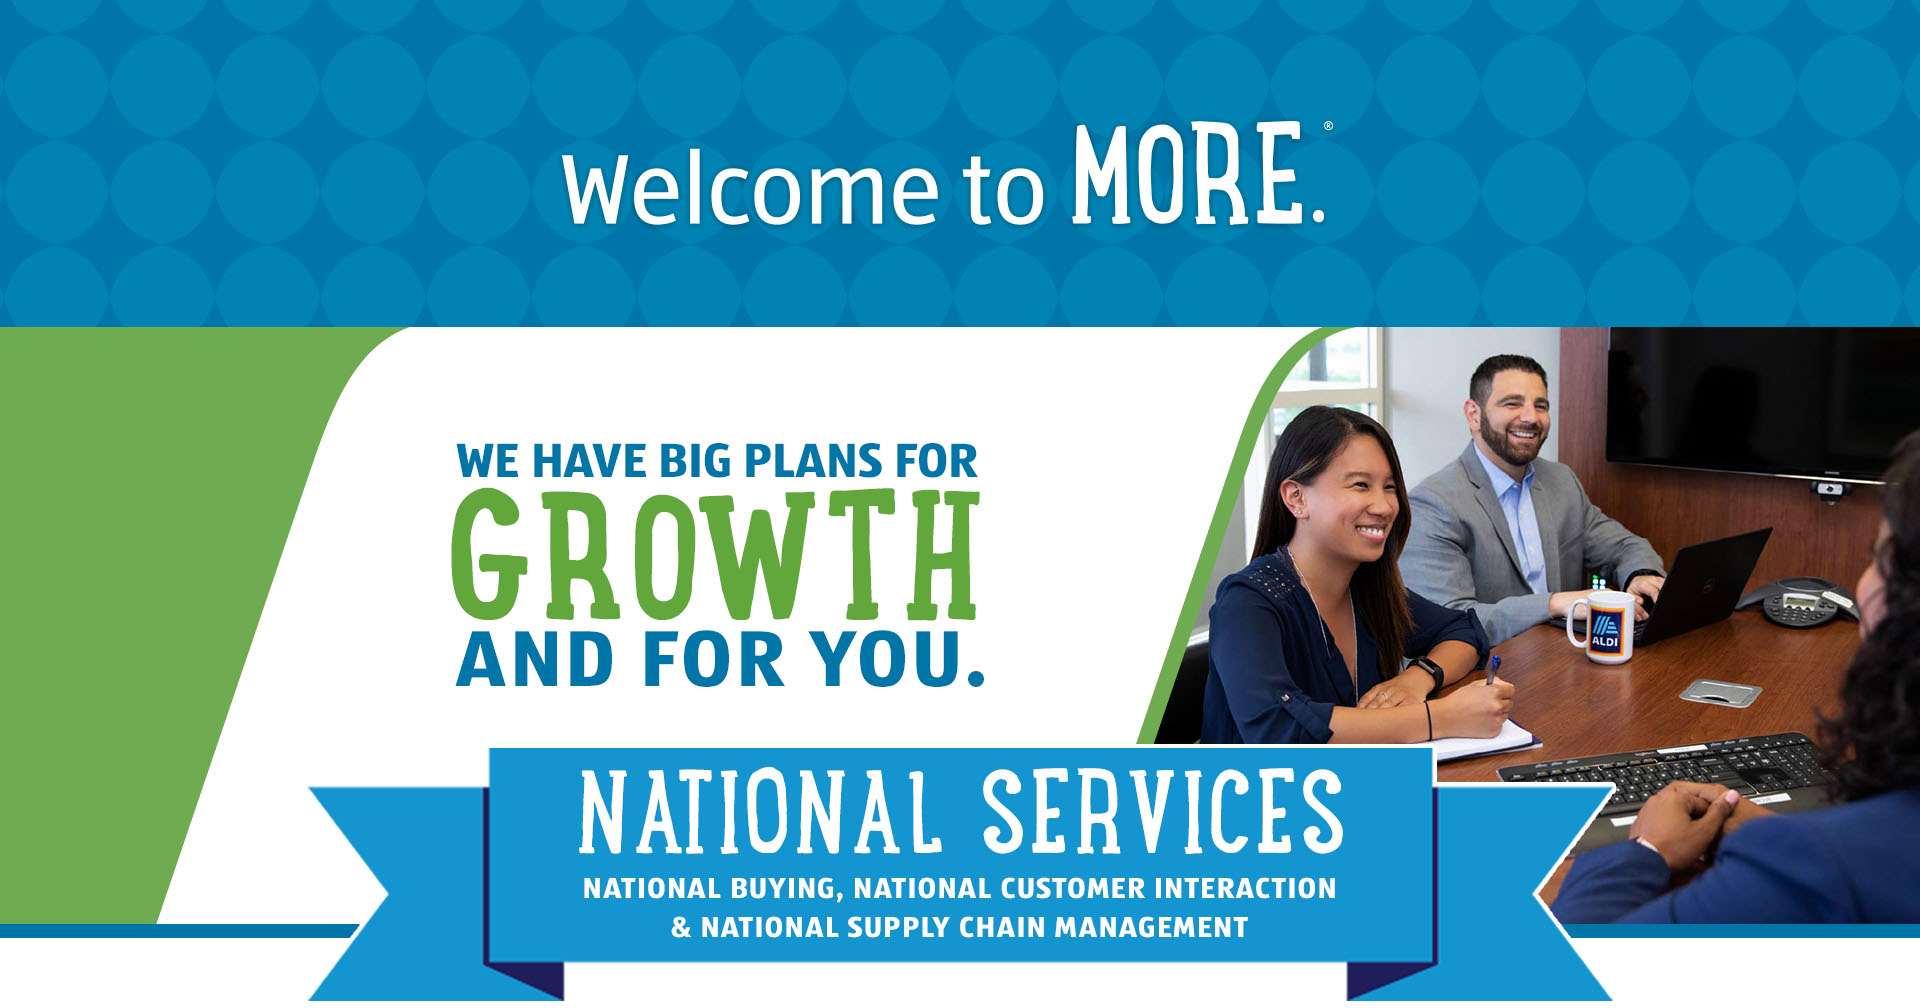 ALDI National Buying Services